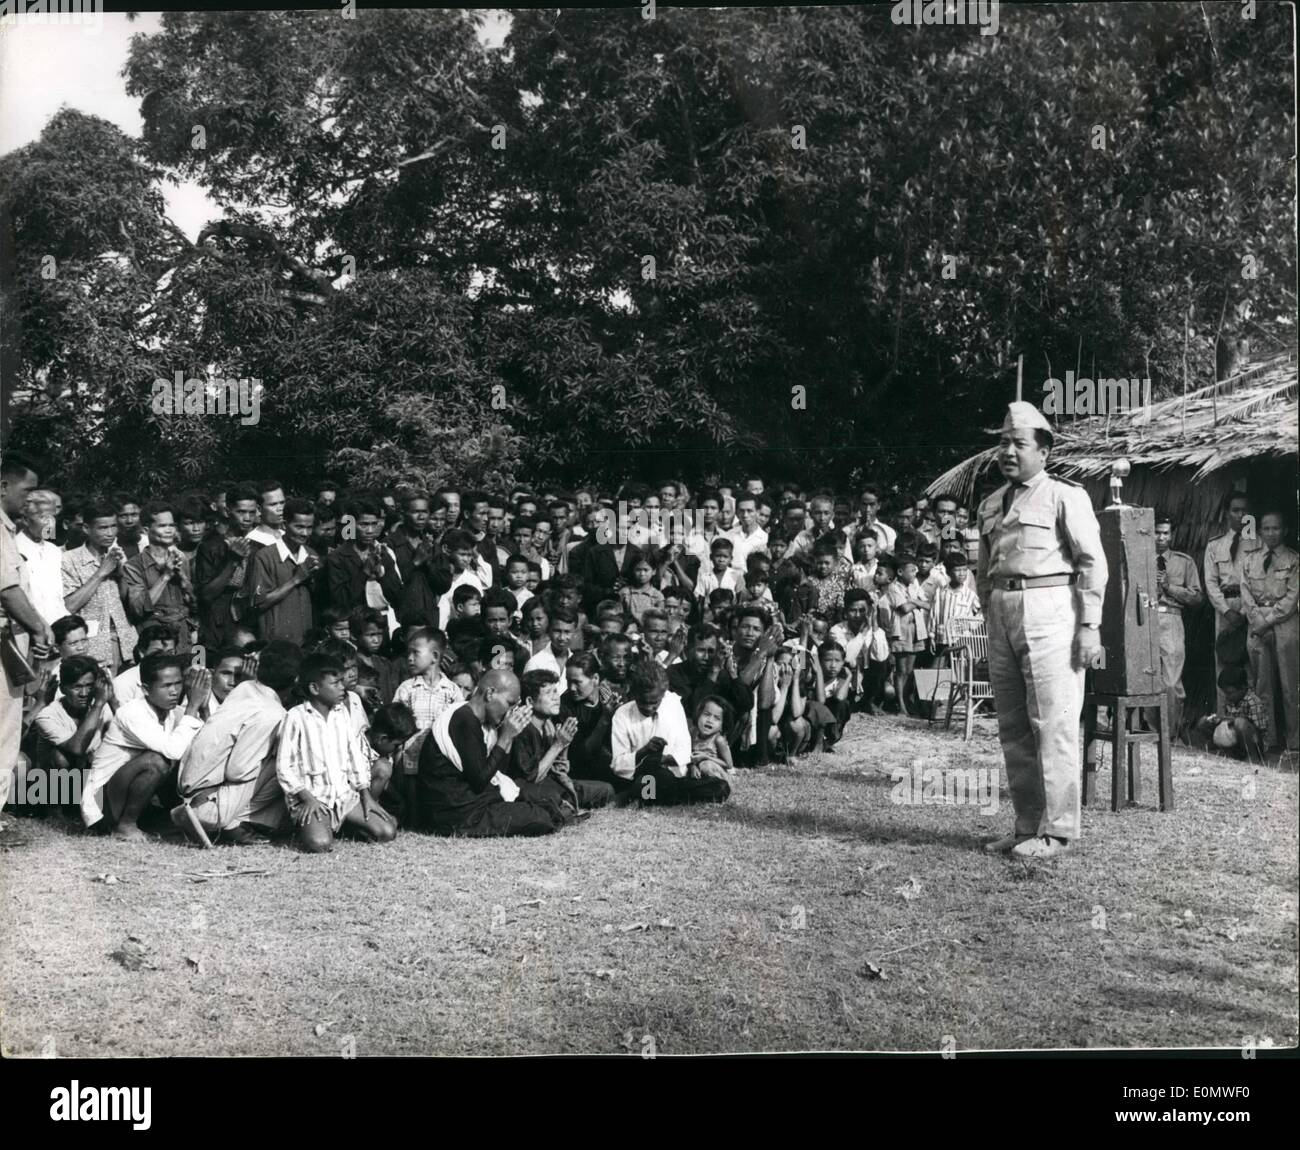 Jul. 07, 1956 - Cambodia Recognises Peking Government: At he hamlet of Chraneang Te about 10 Km from the frontier of South Vietnam, Prince Norodom Sihanouk the Prime Minister of Cambodia recently announce that his government had decided to recognizes de jure (Legally) - the Peking Government. The Prince was addressing an audience - mainly of peasants - when he visited the hamlet to inaugrate his ''water policy'' - intended to promote the construction of dams - wells - reservoirs etc. the country - to ensure water supplies for irrigation etc. during the dry season - Stock Image